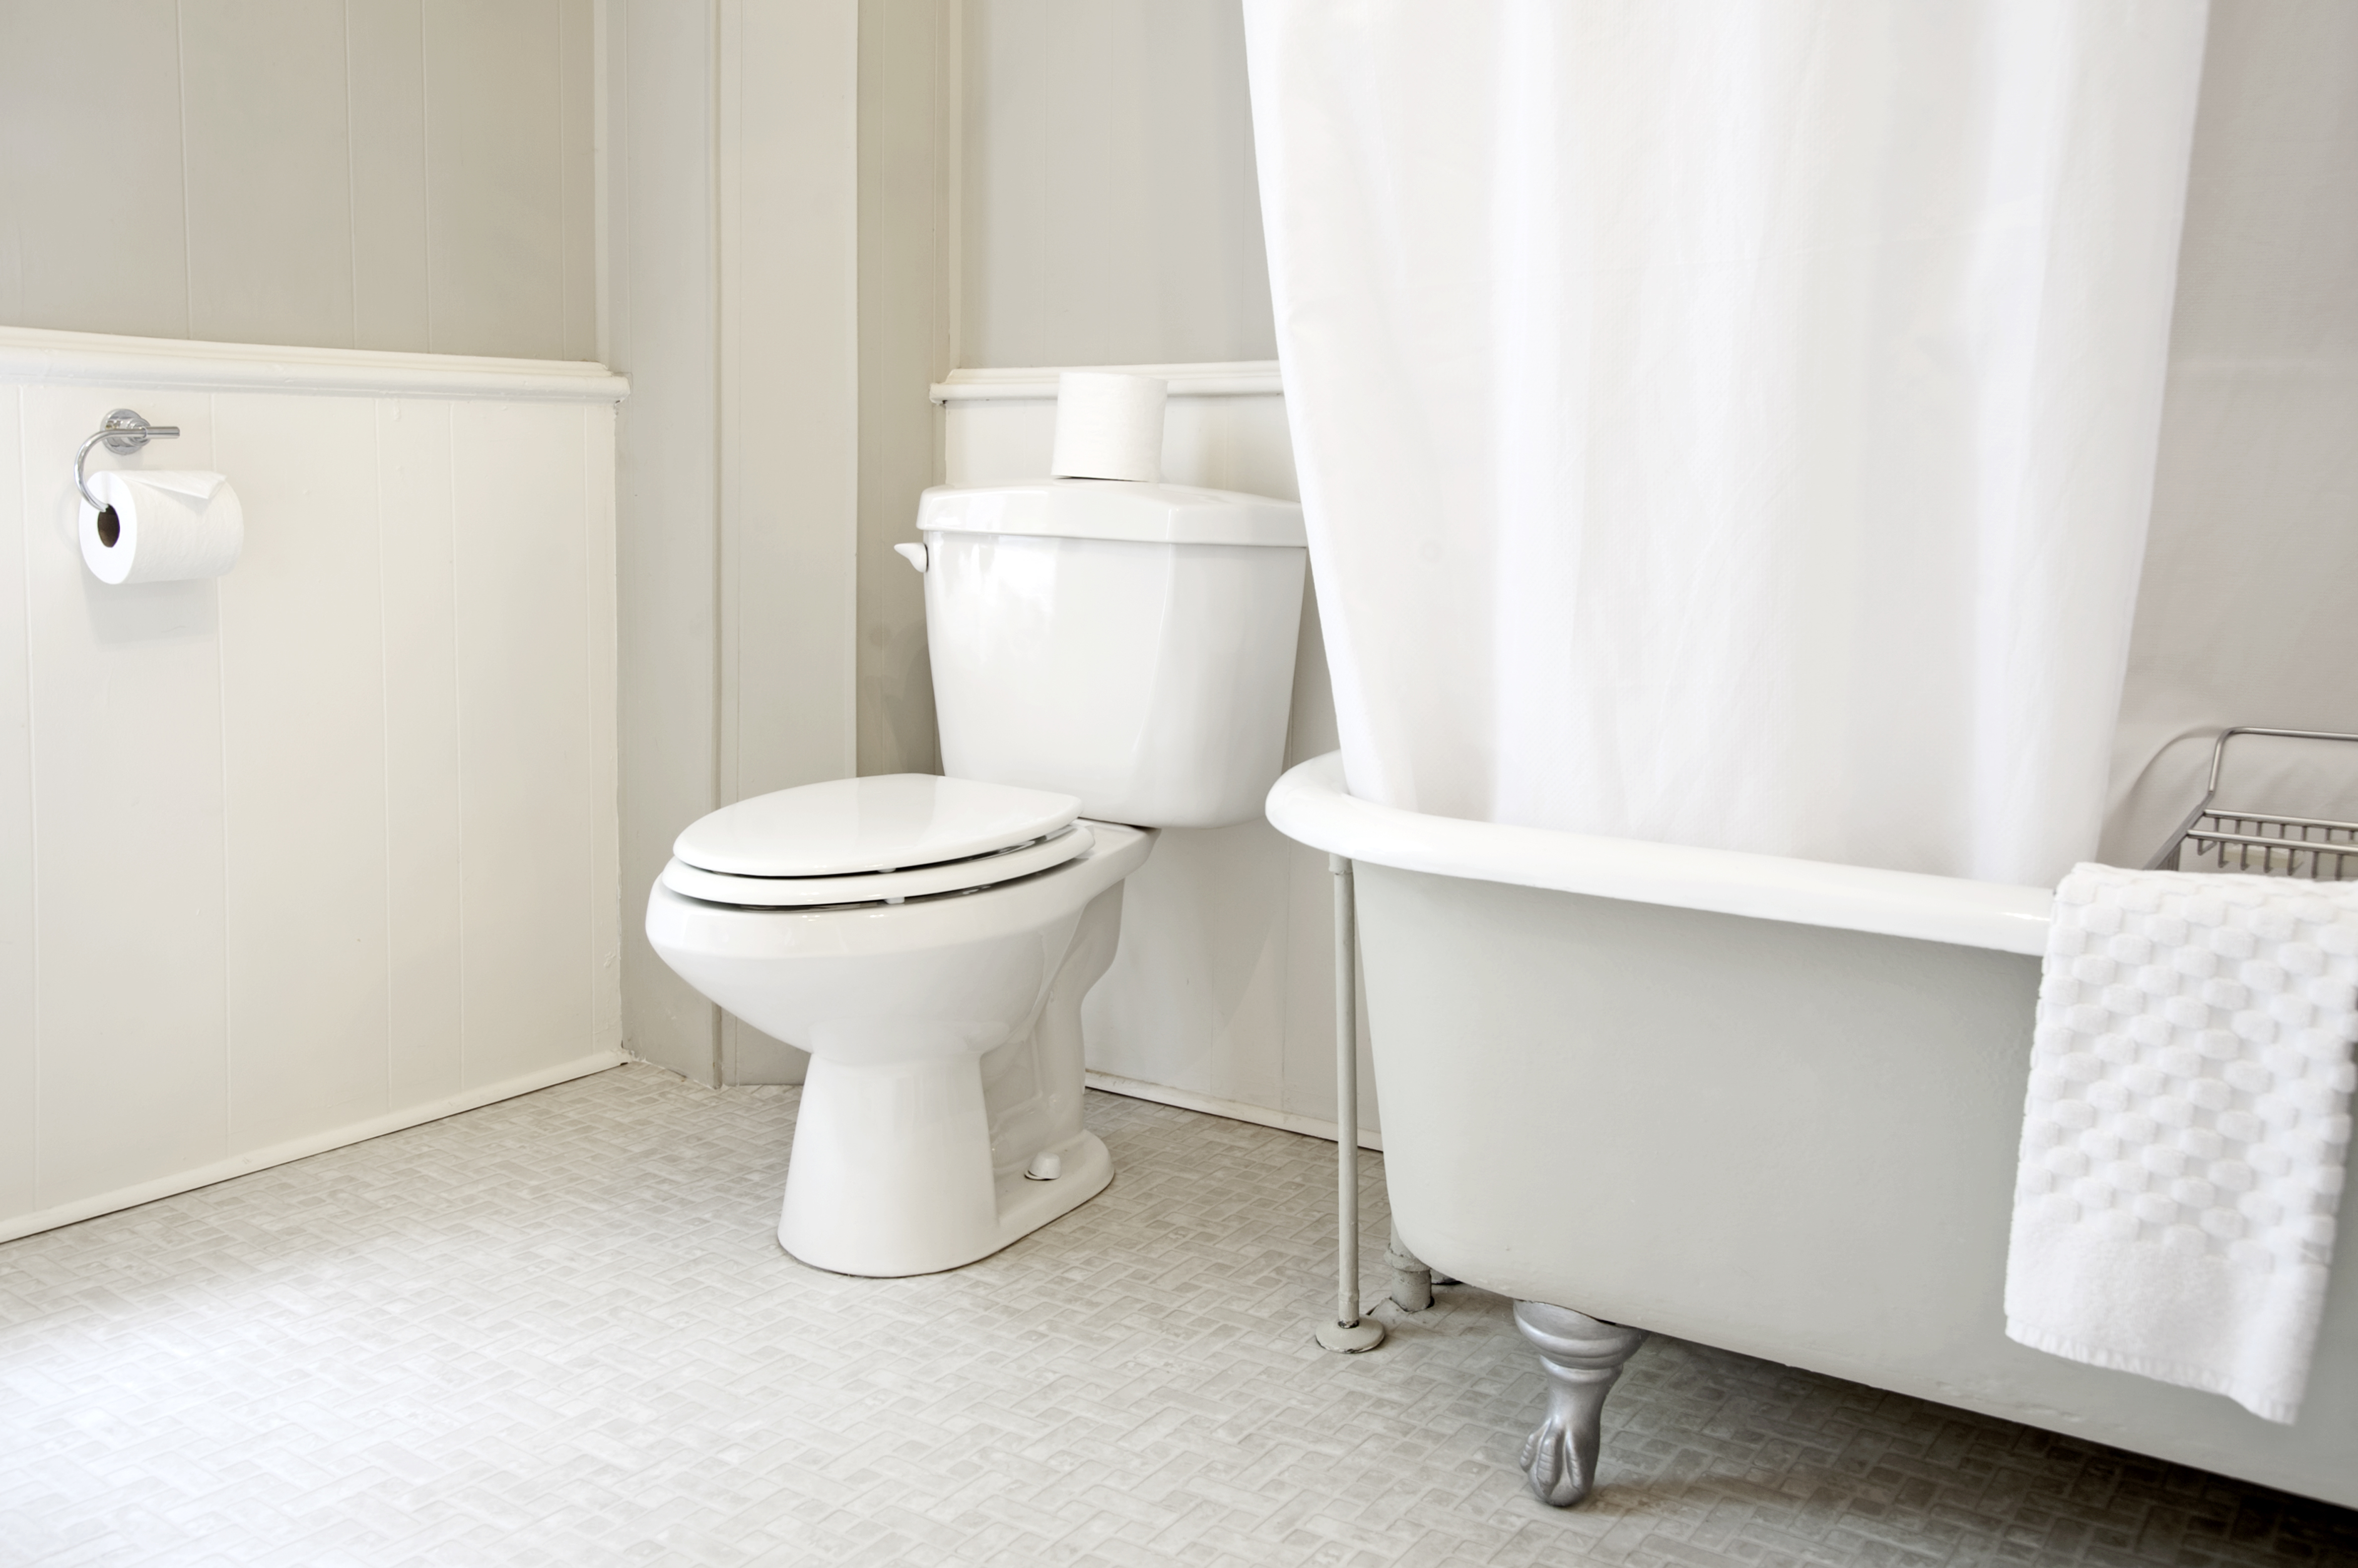 What Size Are Toilet Waste Drains? | Home Guides | SF Gate